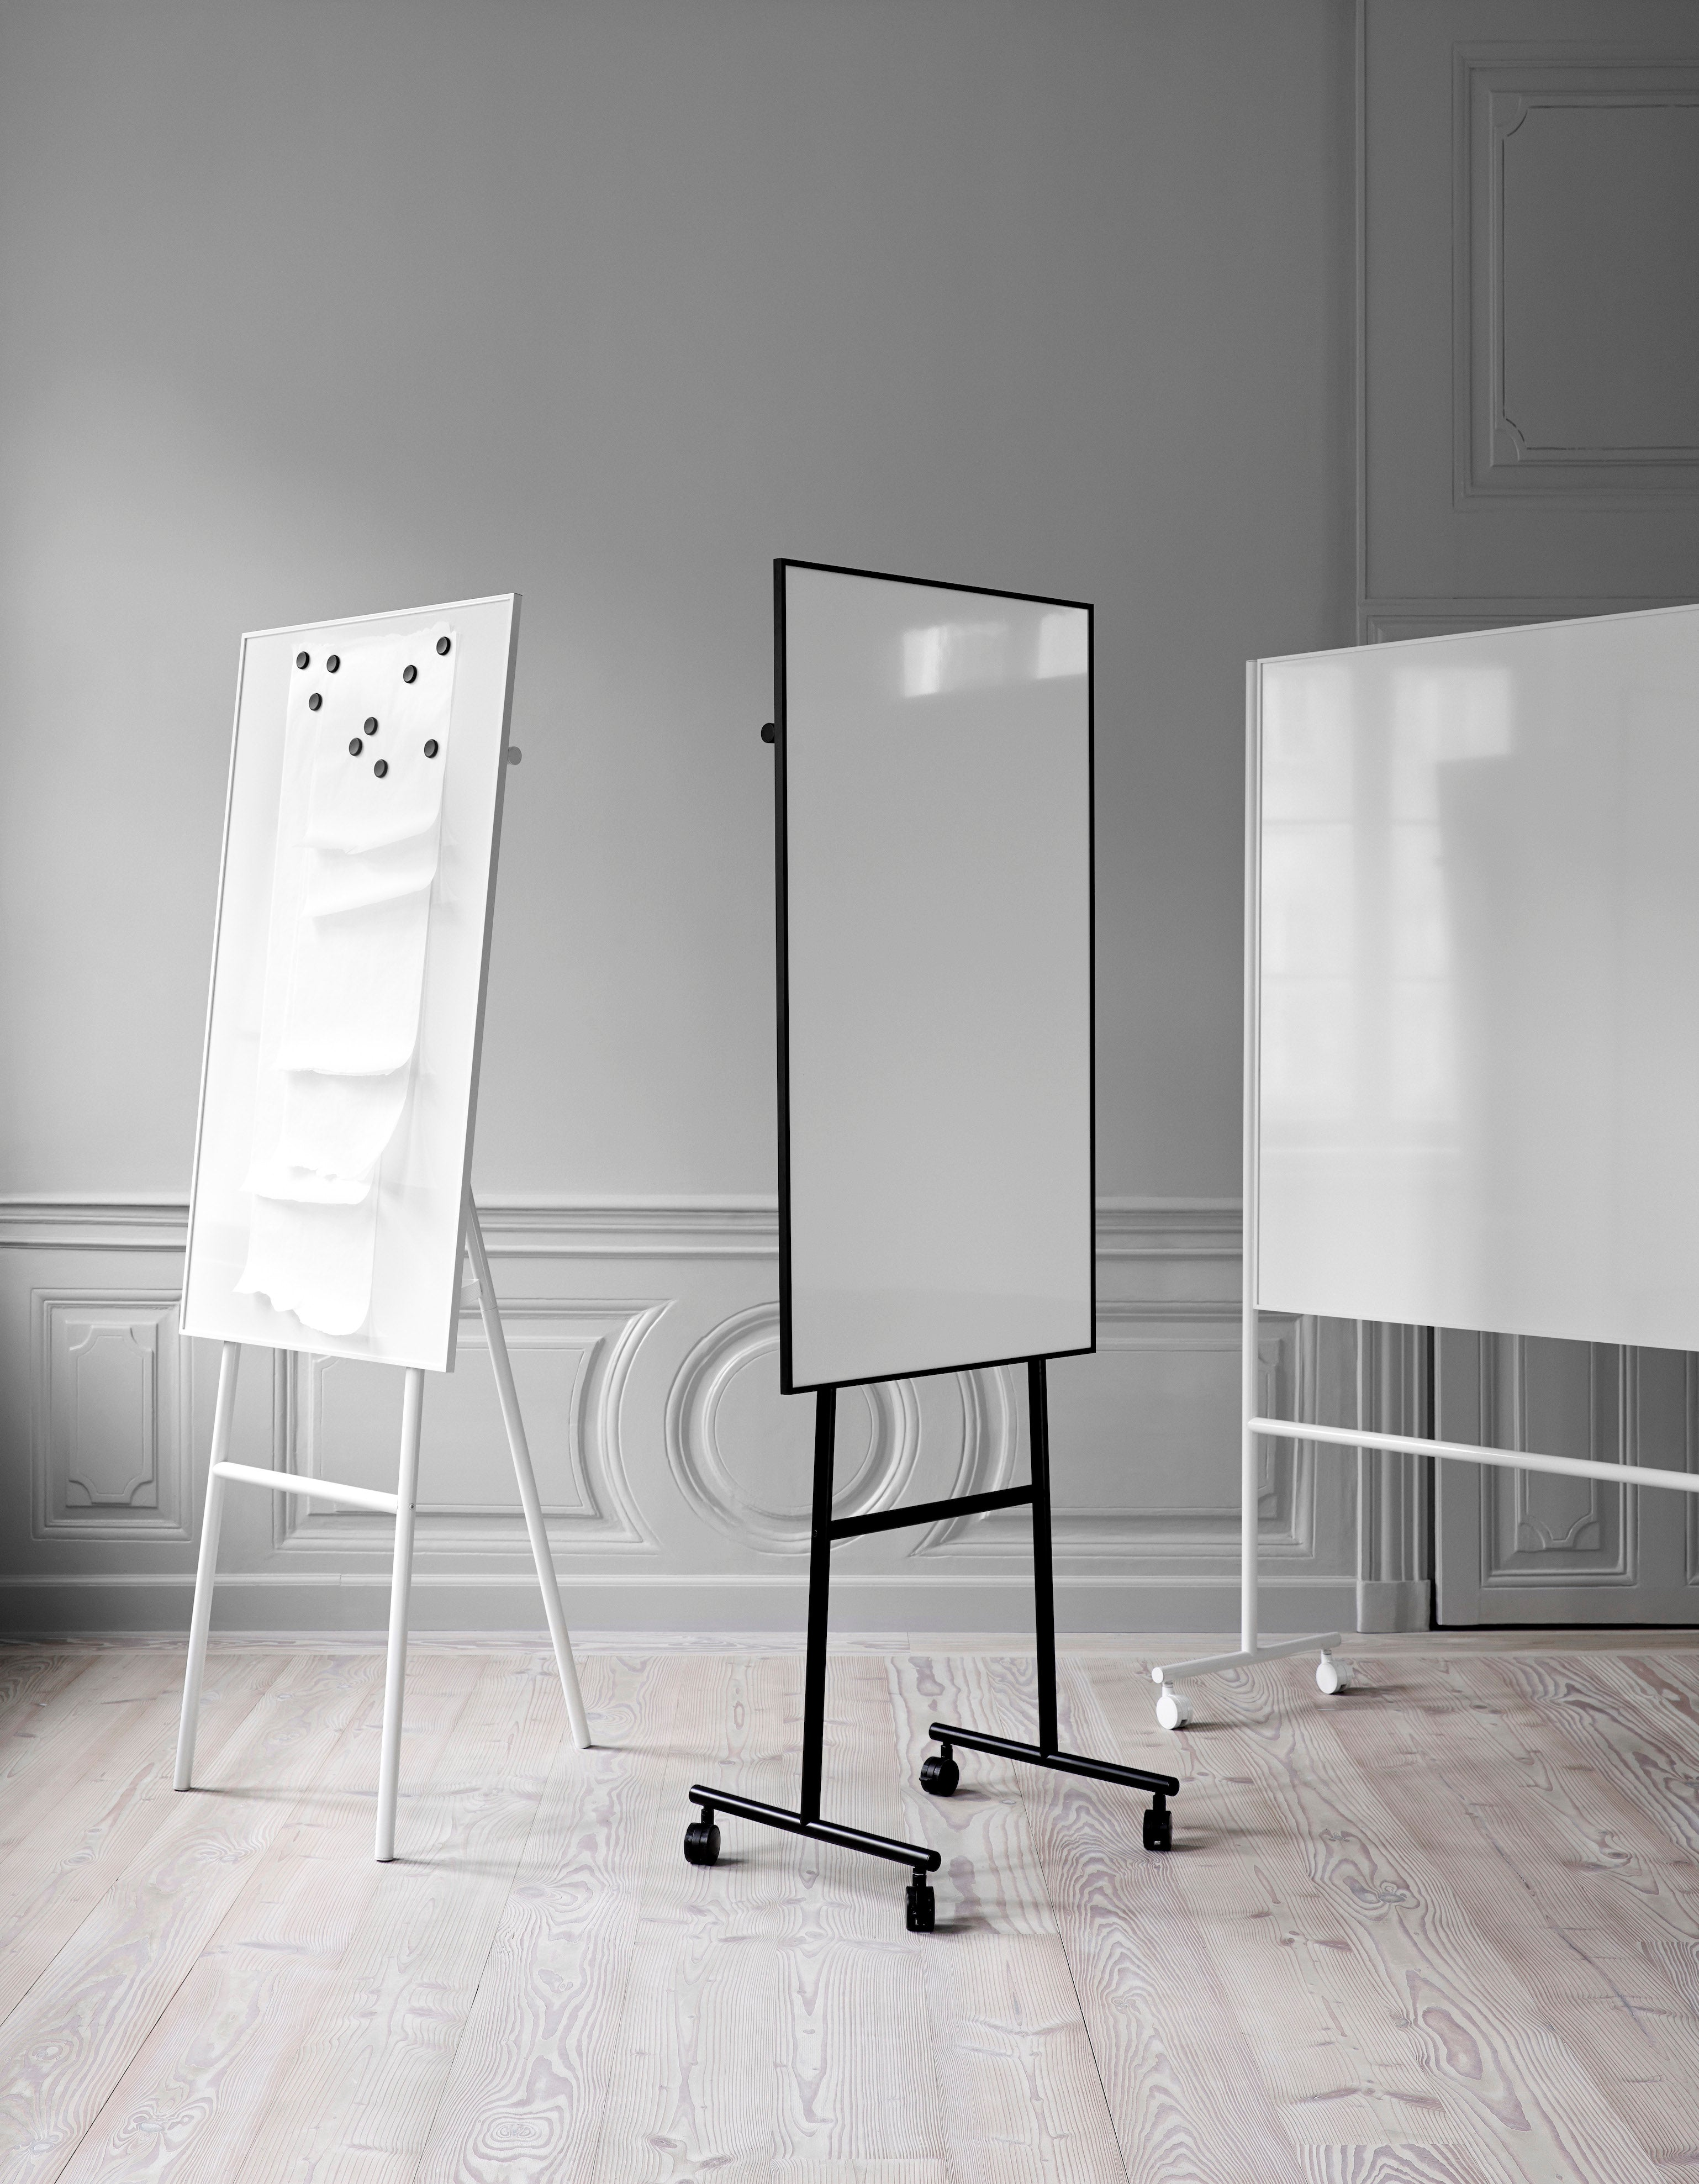 Lintex ONE Mobile Double Sided Whiteboard